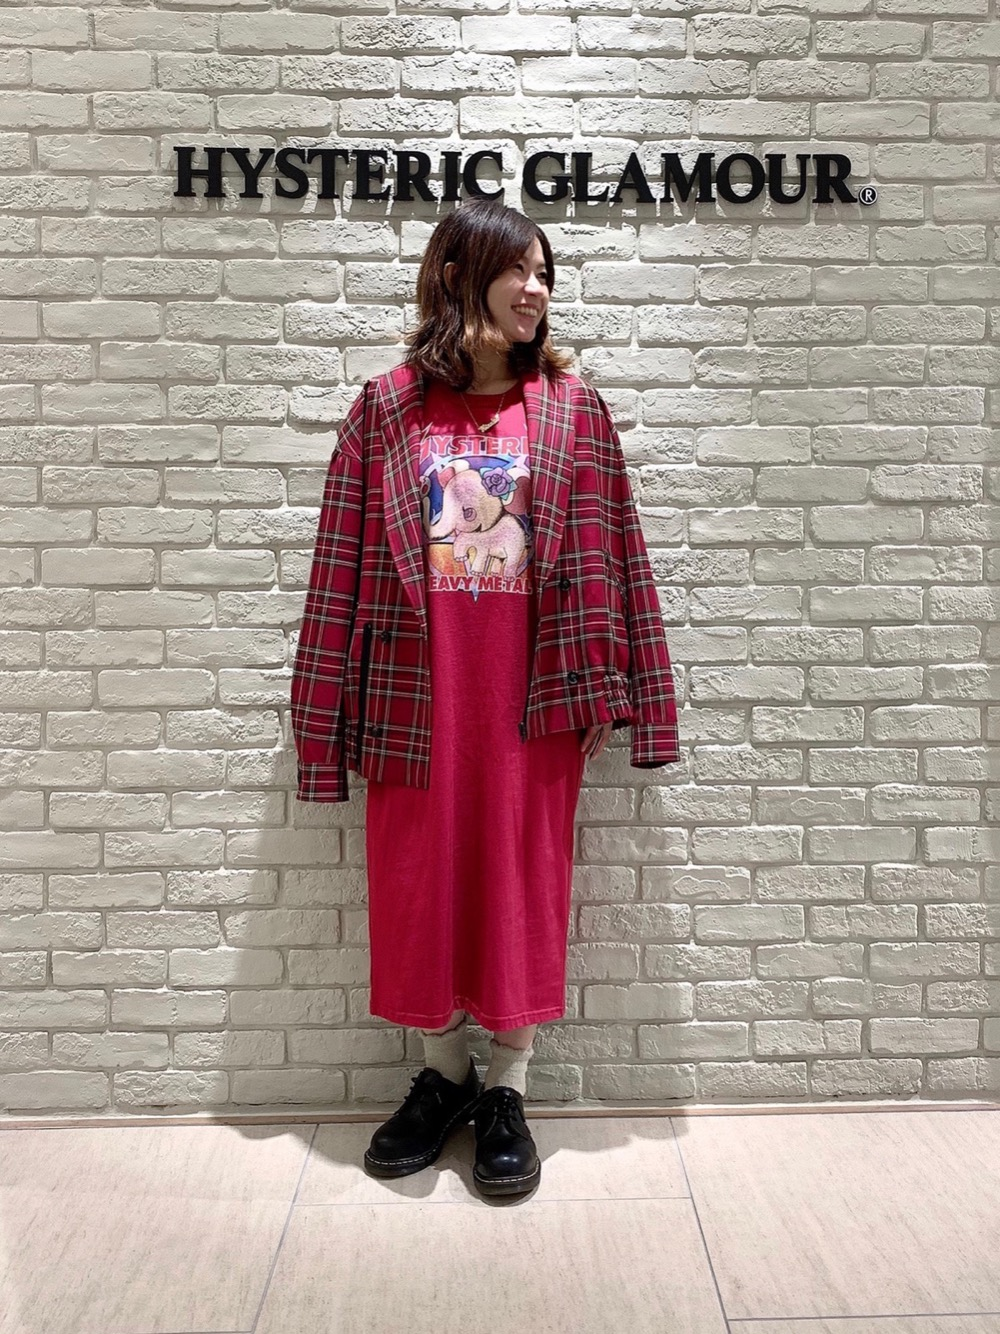 HYSTERIC GLAMOUR名古屋店